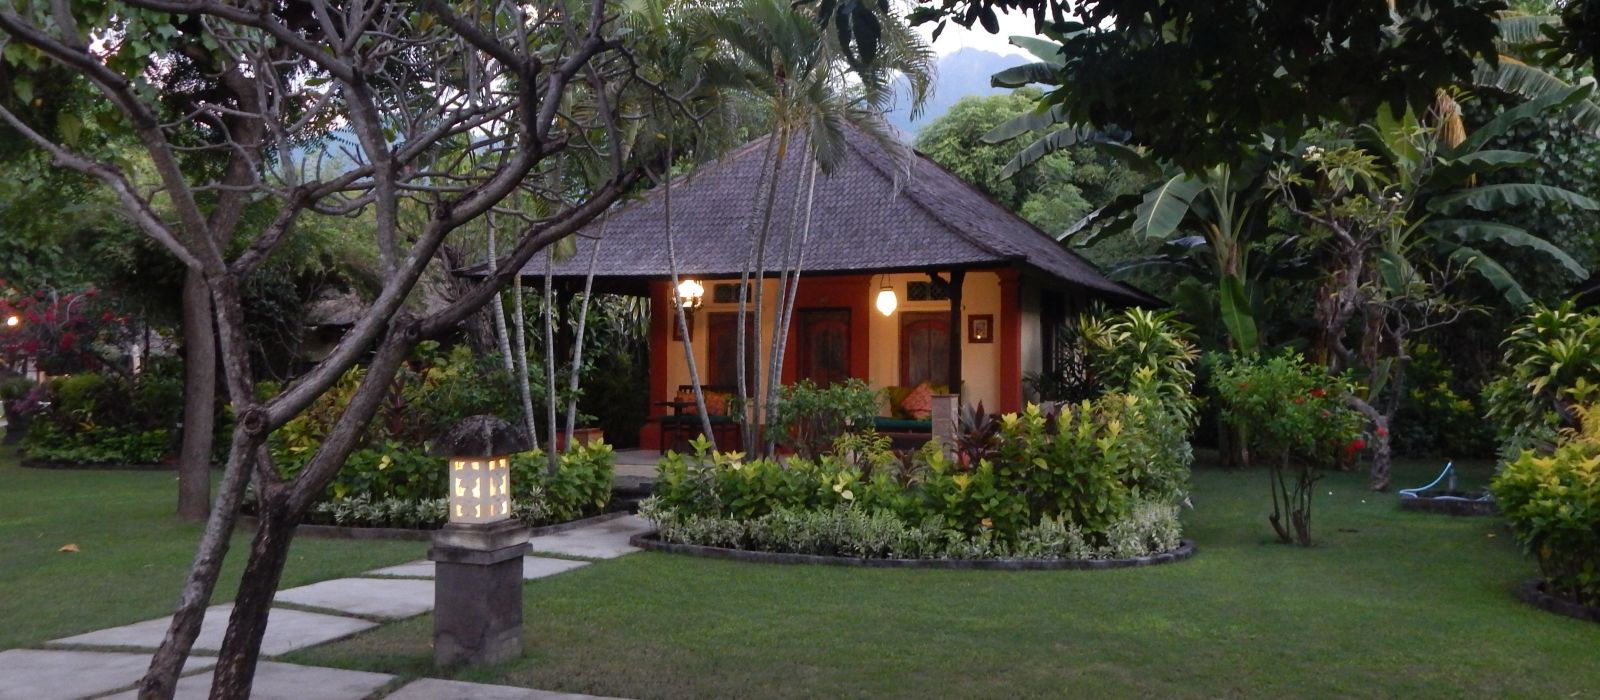 Hotel Taman Sari Bali Resort & Spa Indonesia